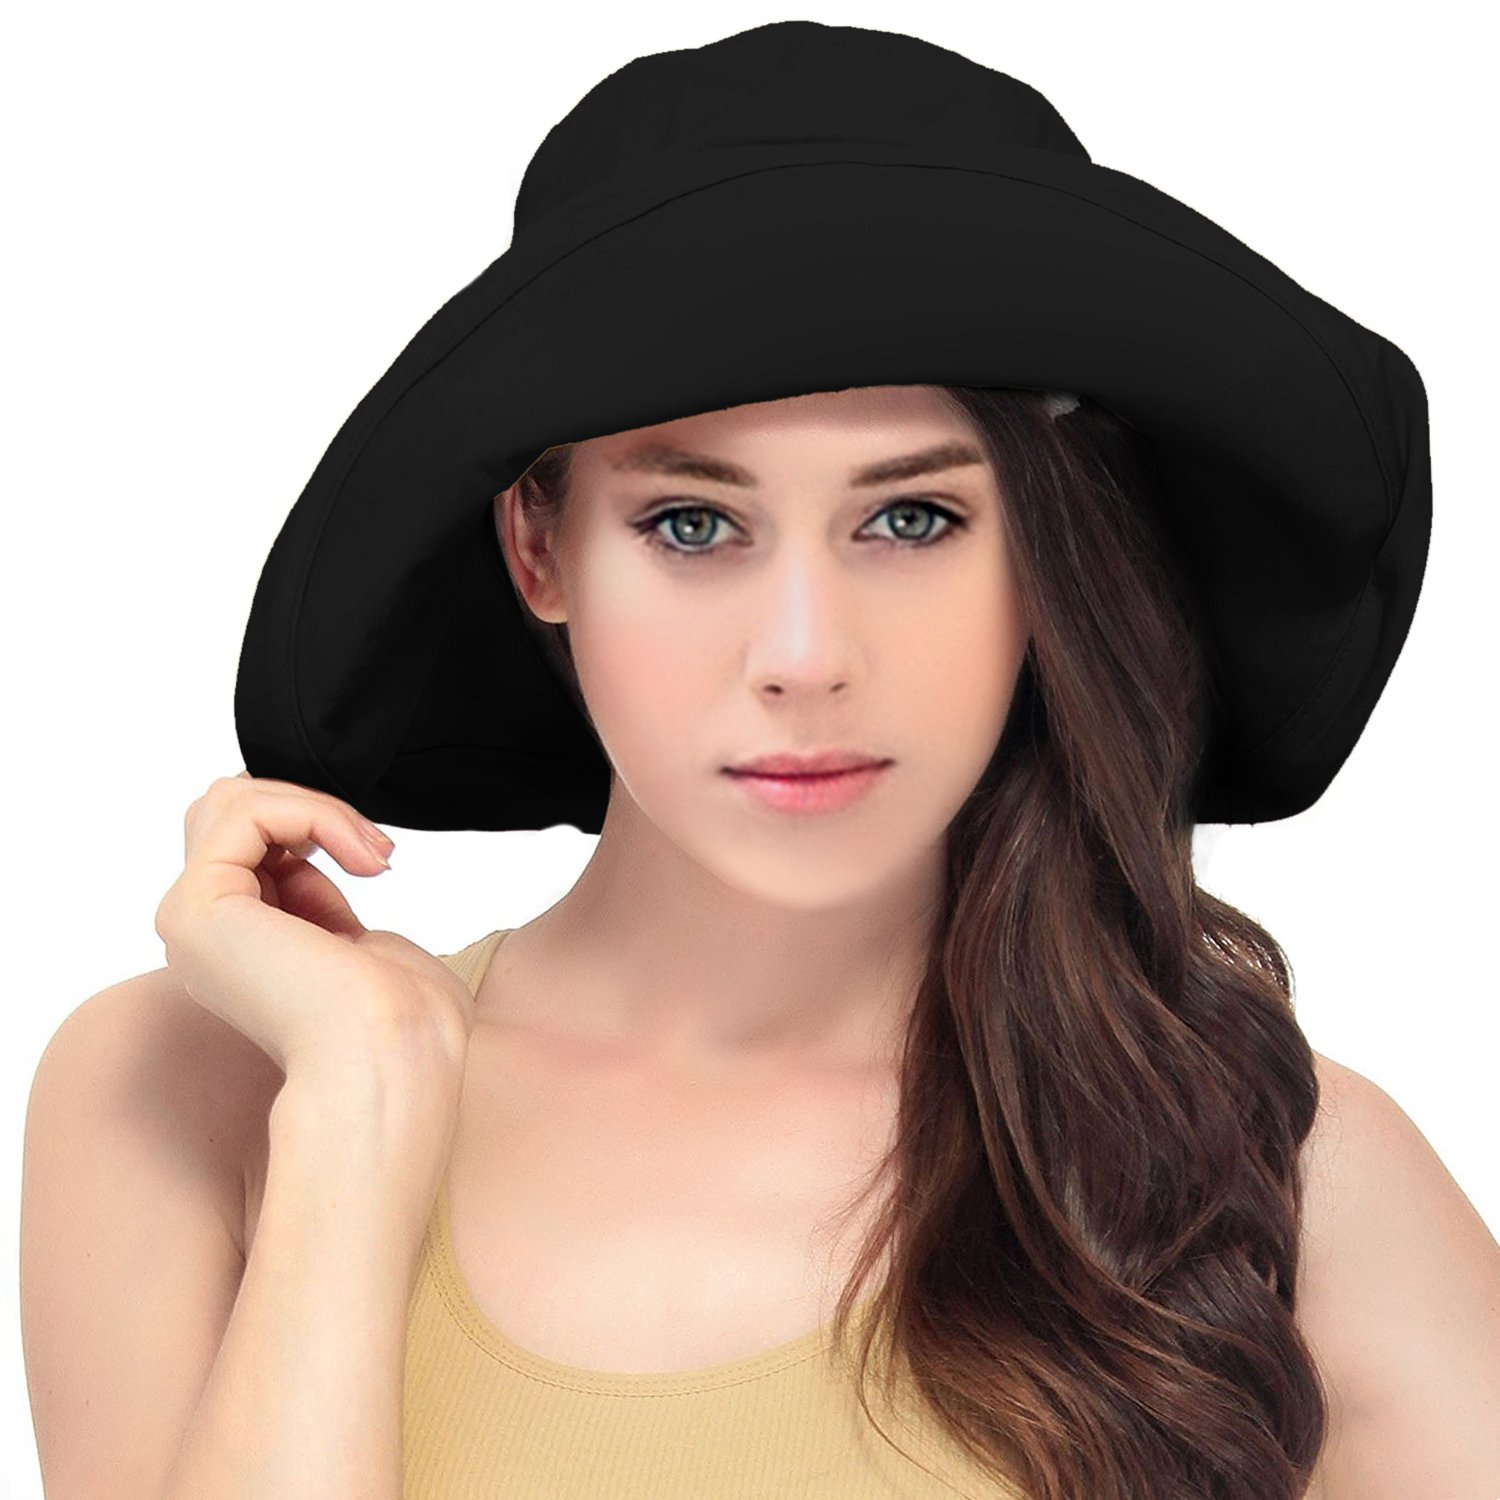 6793c9f2f0f78 Simplicity Women s Cotton Summer Beach Sun Hat with Wide Fold-Up Brim Black  at Amazon Women s Clothing store